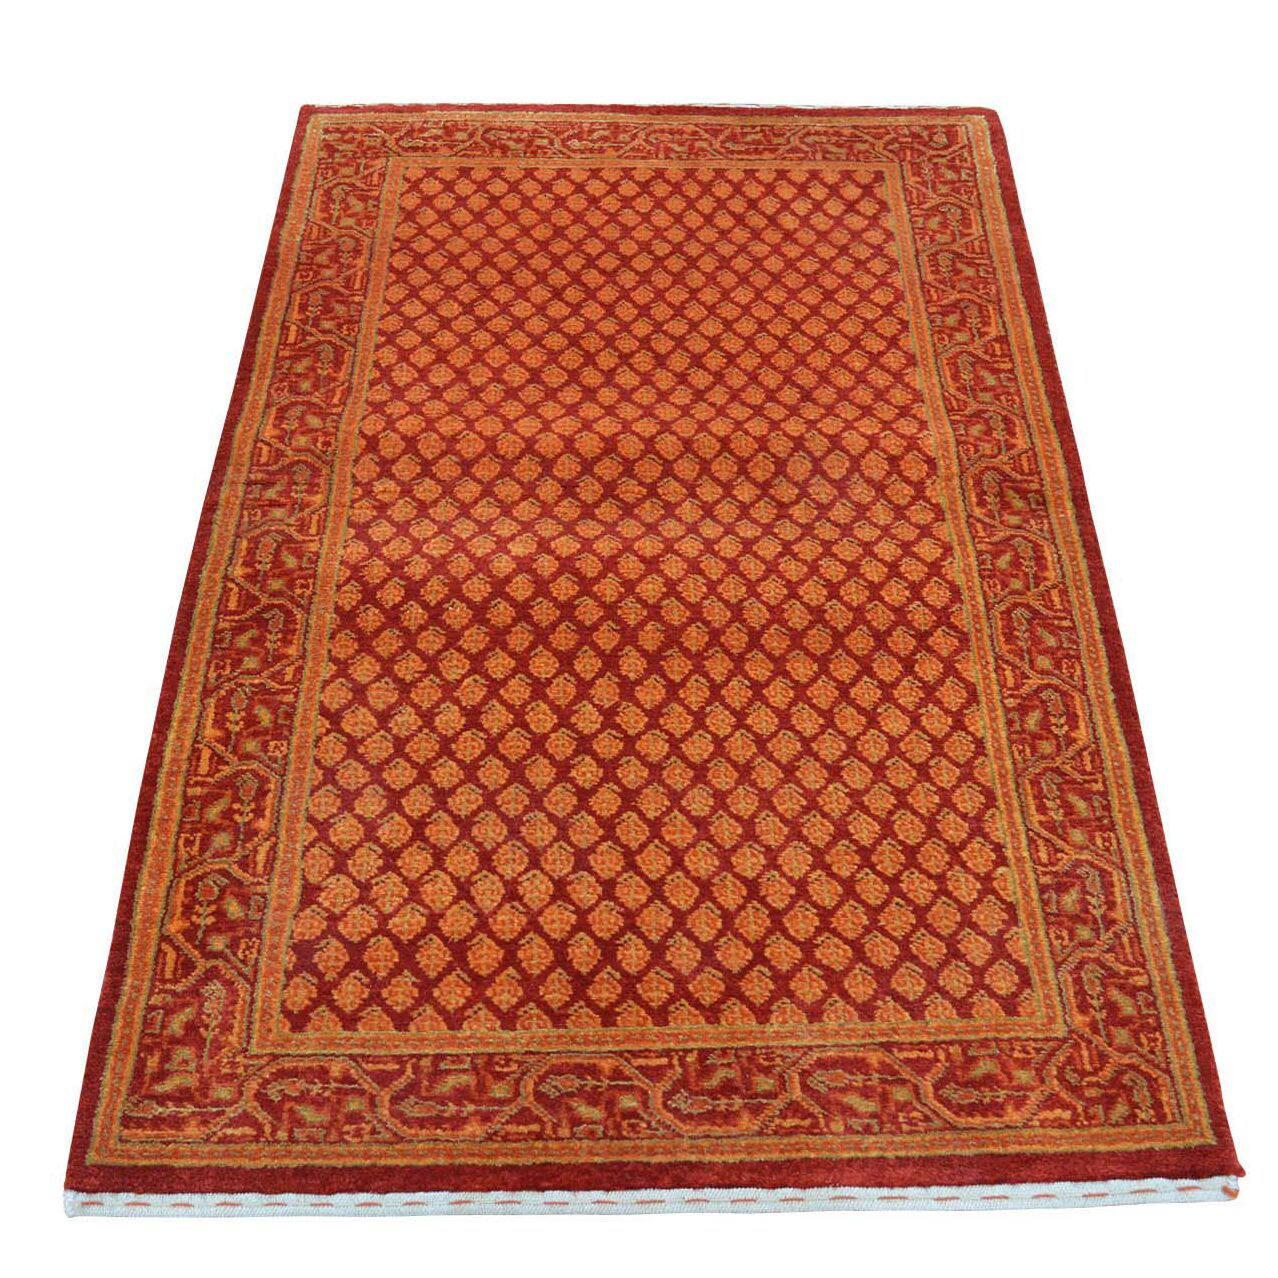 Sarouk Mir Overdyed Hand-Knotted Red Area Rug